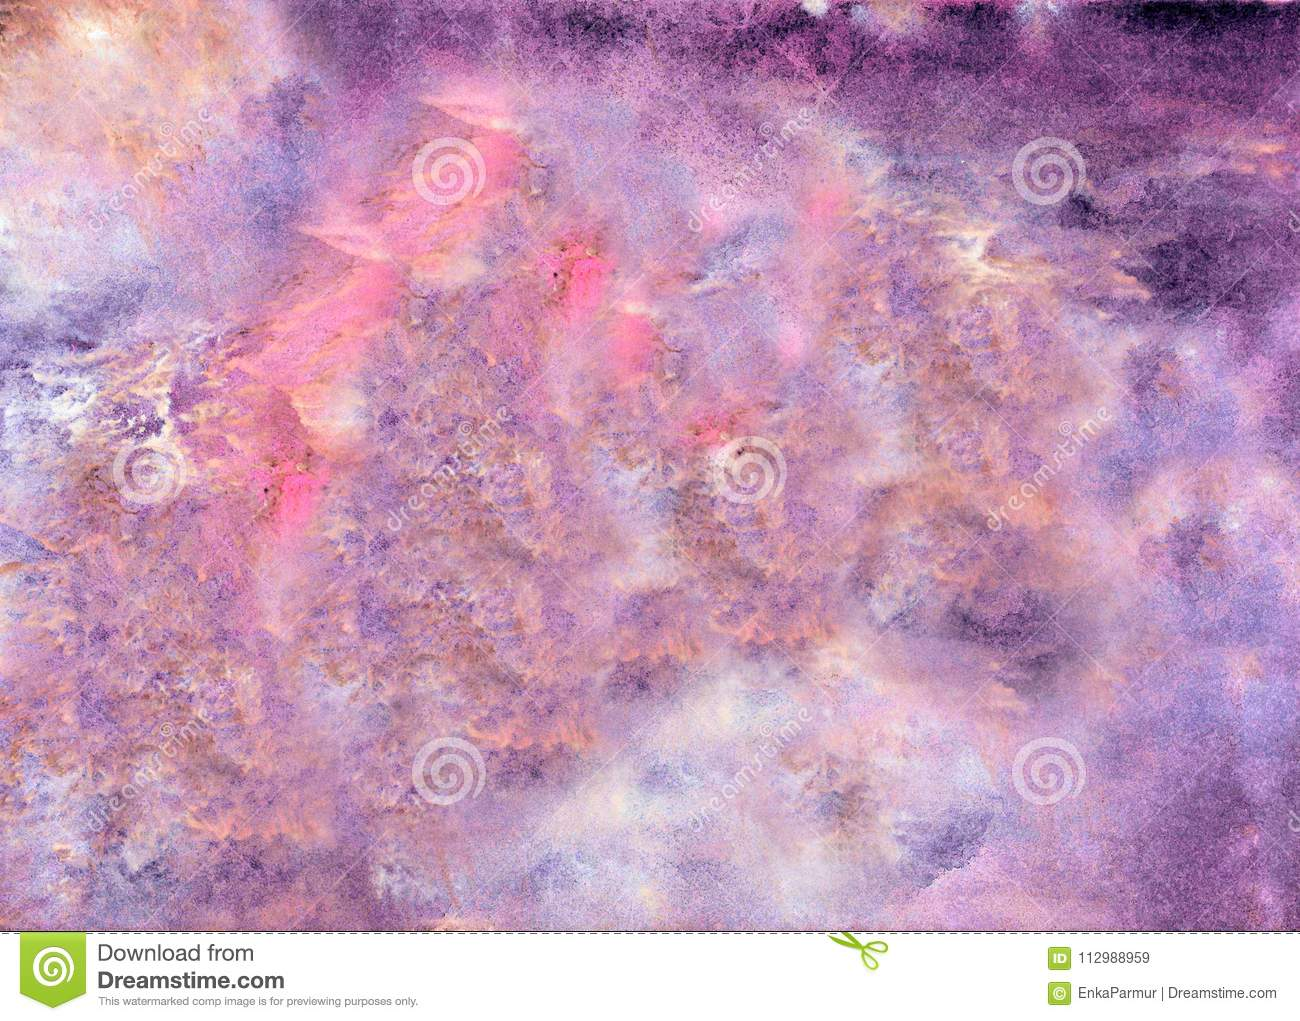 Abstract acrylic painted background. Pink violet textured vibrant color. Grunge template for your design.